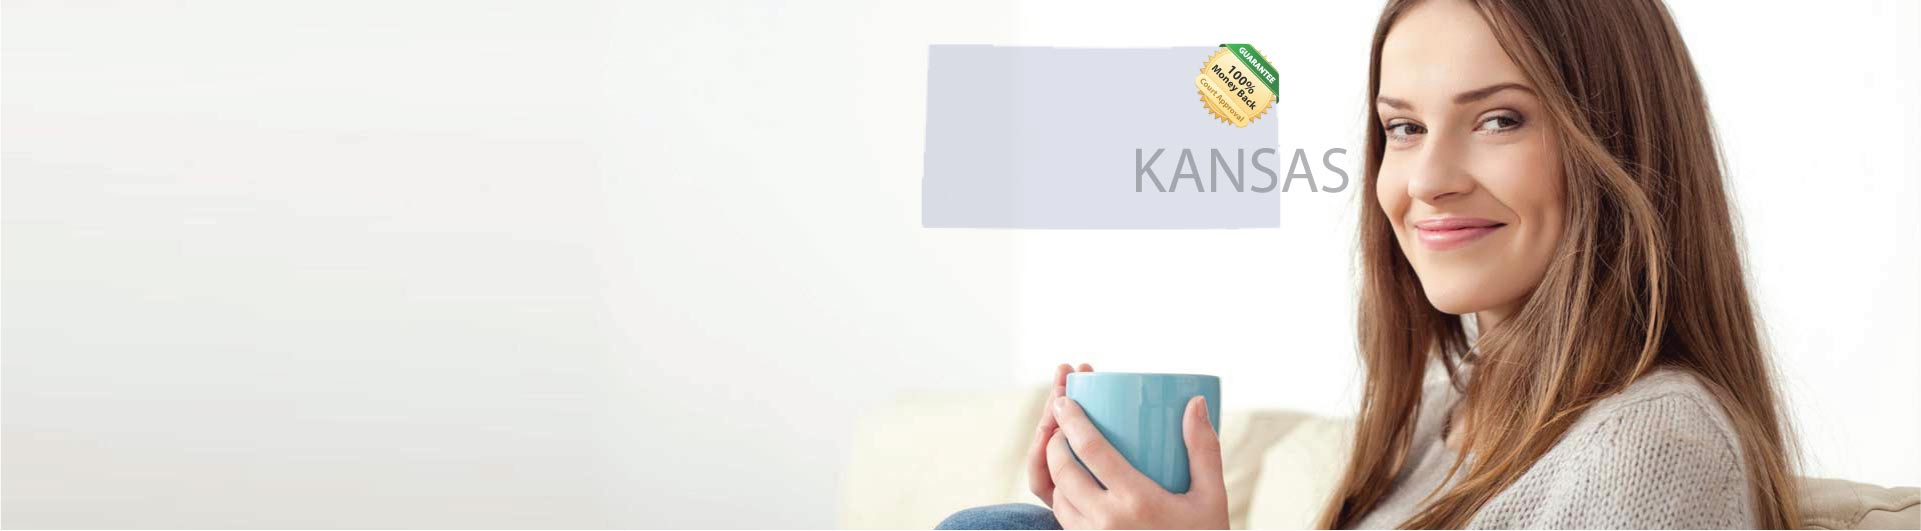 Kansas divorce forms affordable online divorce in kansas online divorce forms and documents file your divorce with smartdivorce solutioingenieria Image collections